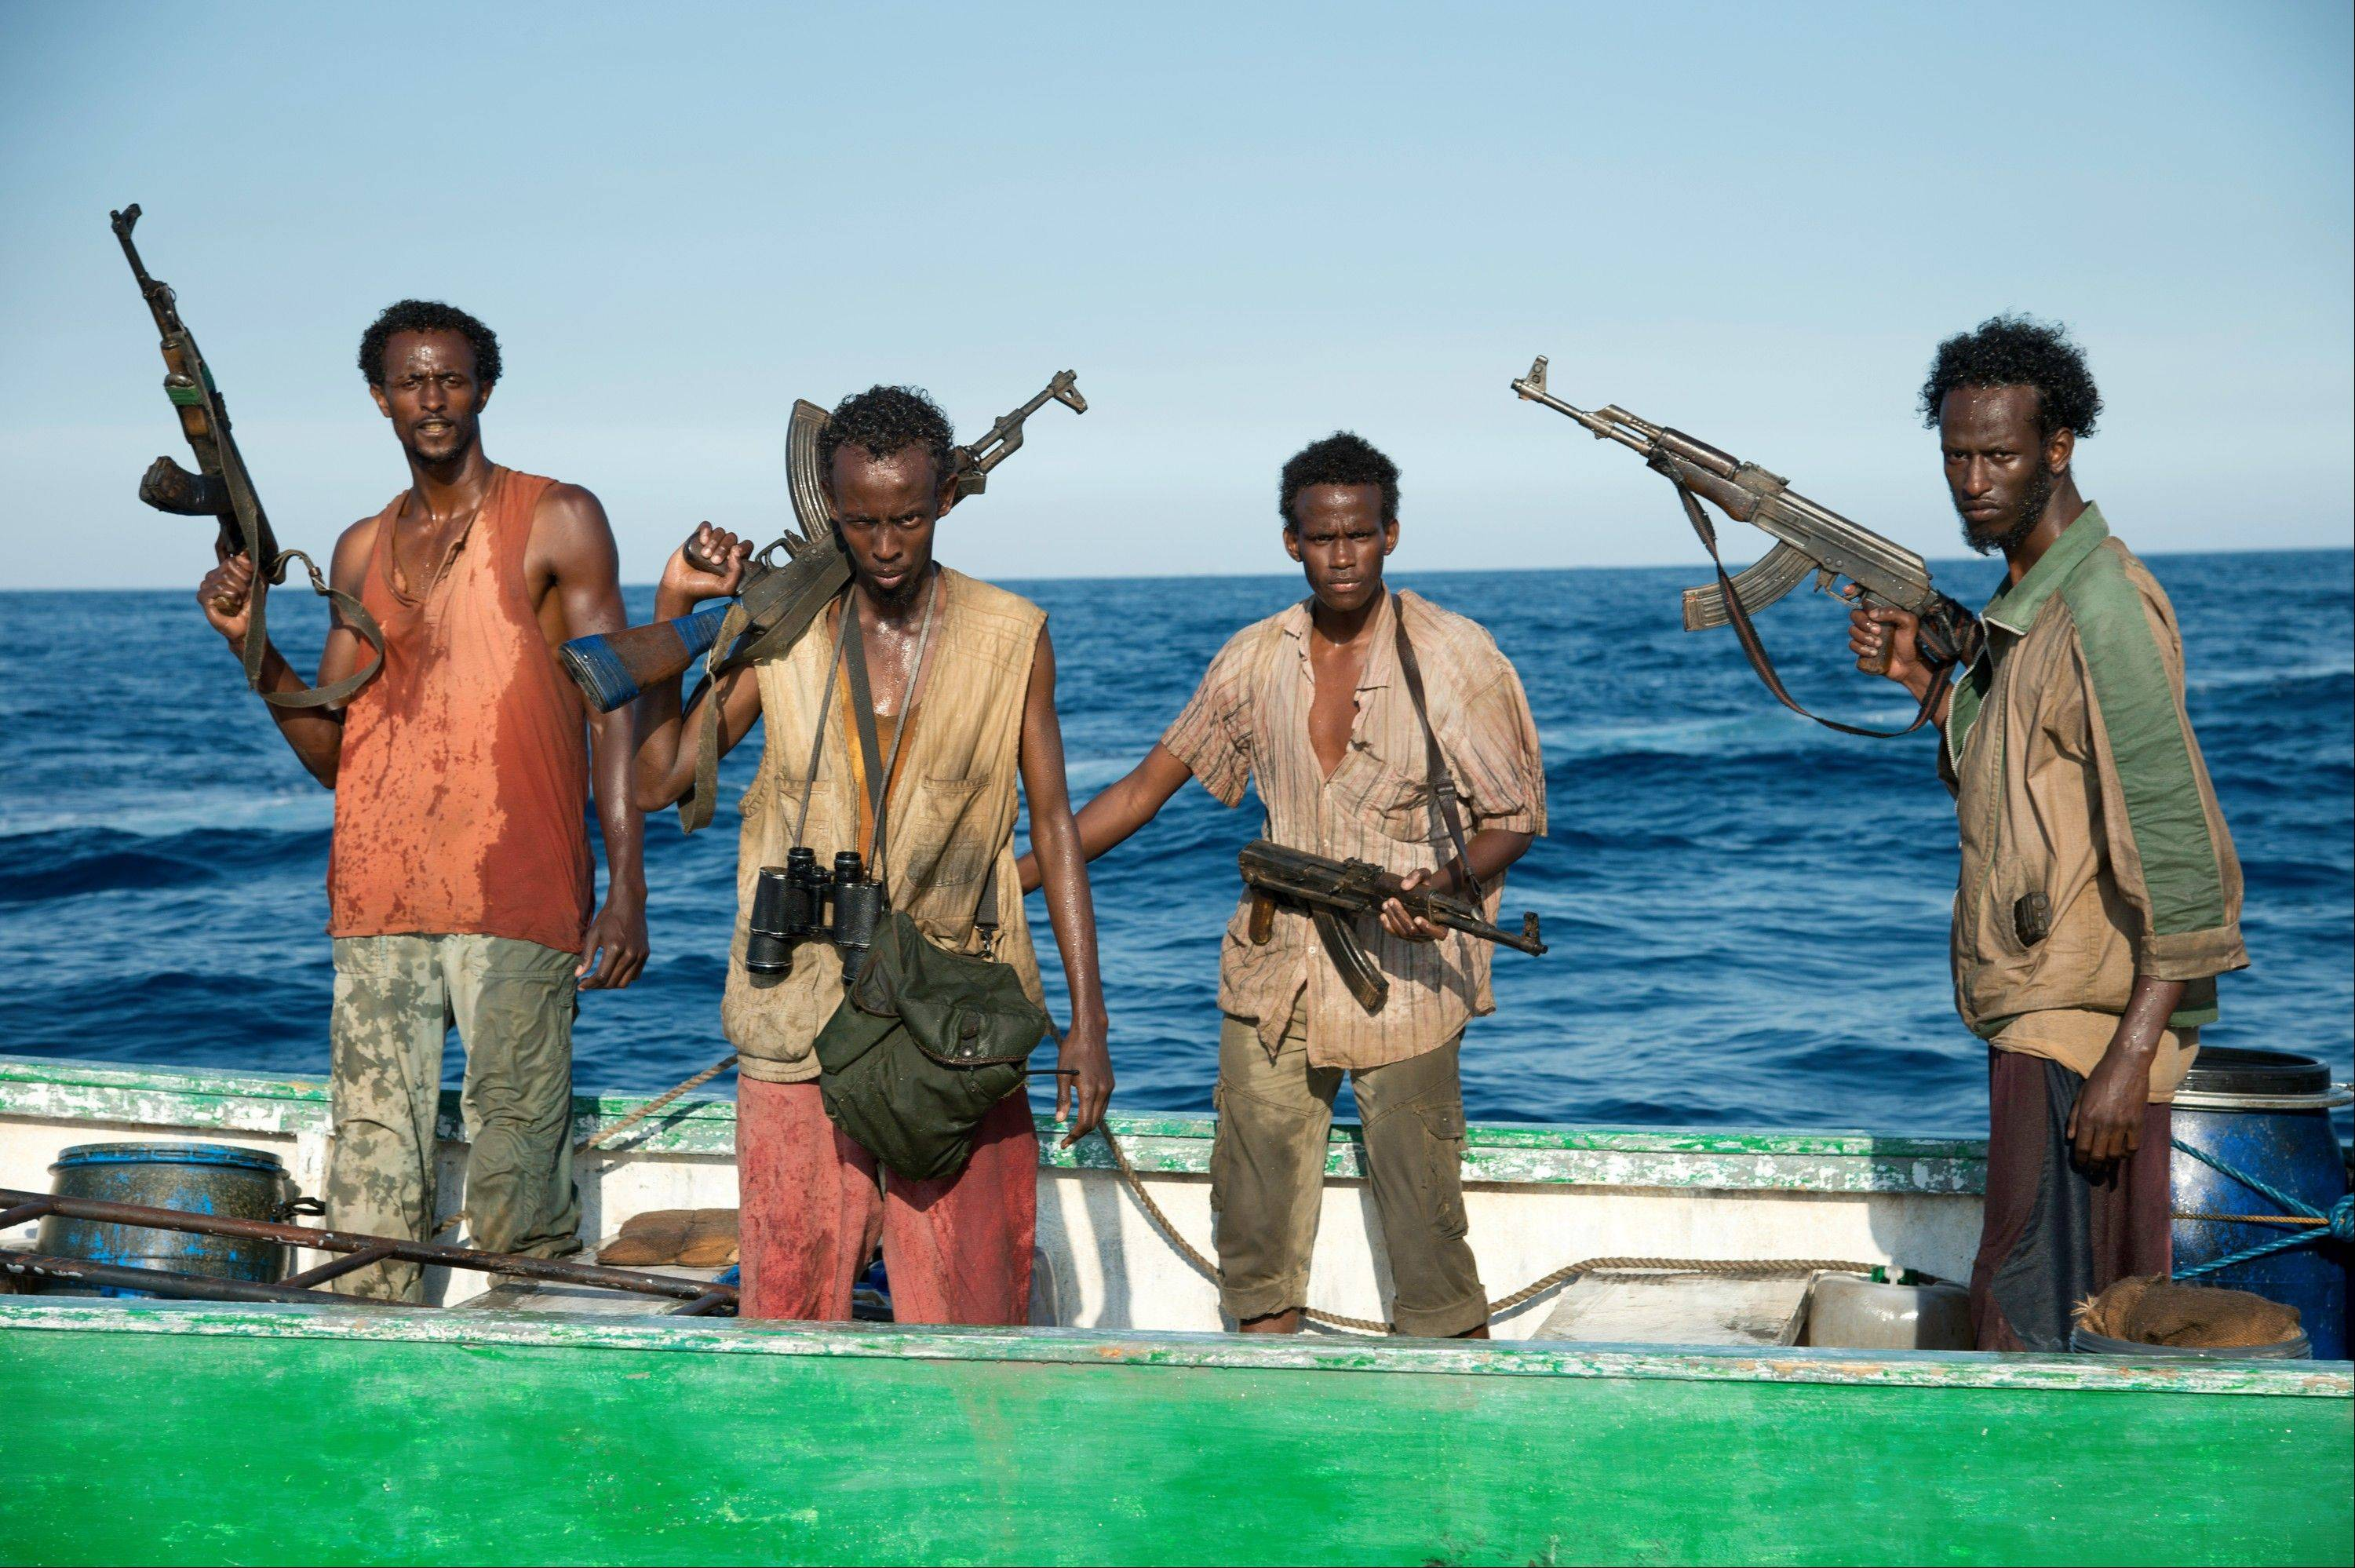 Faysal Ahmed, left, Barkhad Abdi, Barkhad Abdirahman and Mahat Ali, all amateur actors of Somali descent from Minneapolis, made their film debut acting as Somali pirates alongside Tom Hanks in �Captain Phillips.�